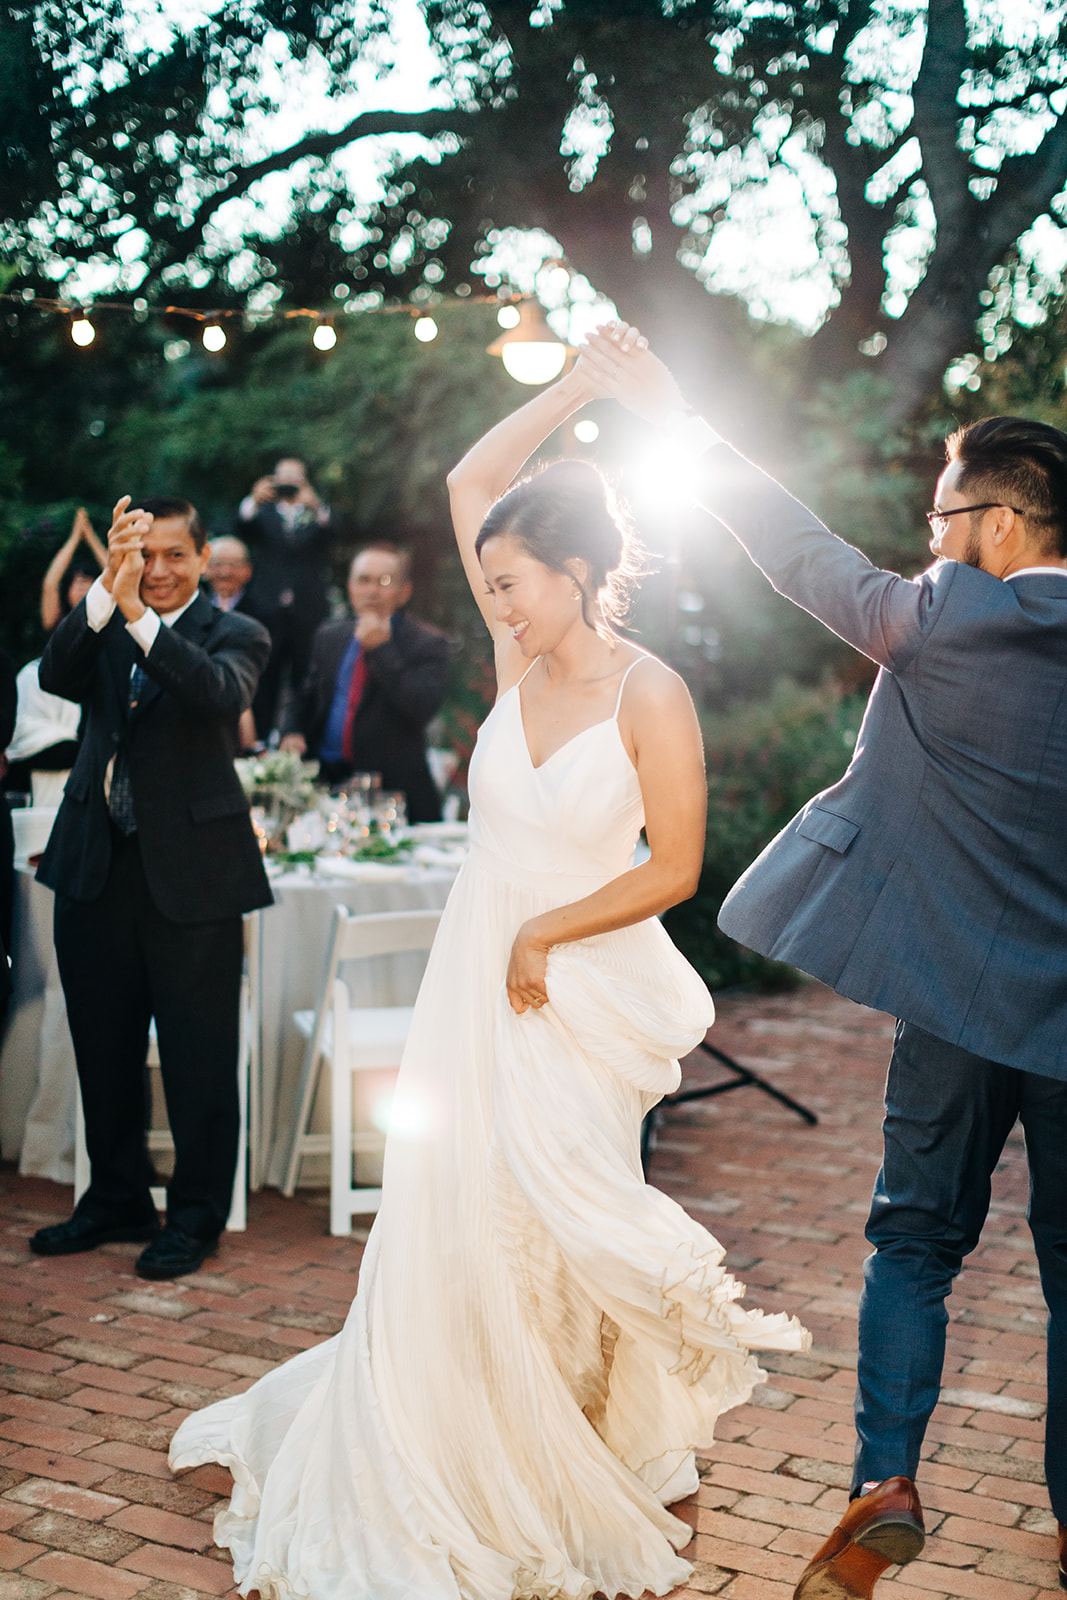 Los-Altos-History-Museum-Wedding_Orange-County-Wedding-Photographer_Clarisse-Rae-Photo-Video_92